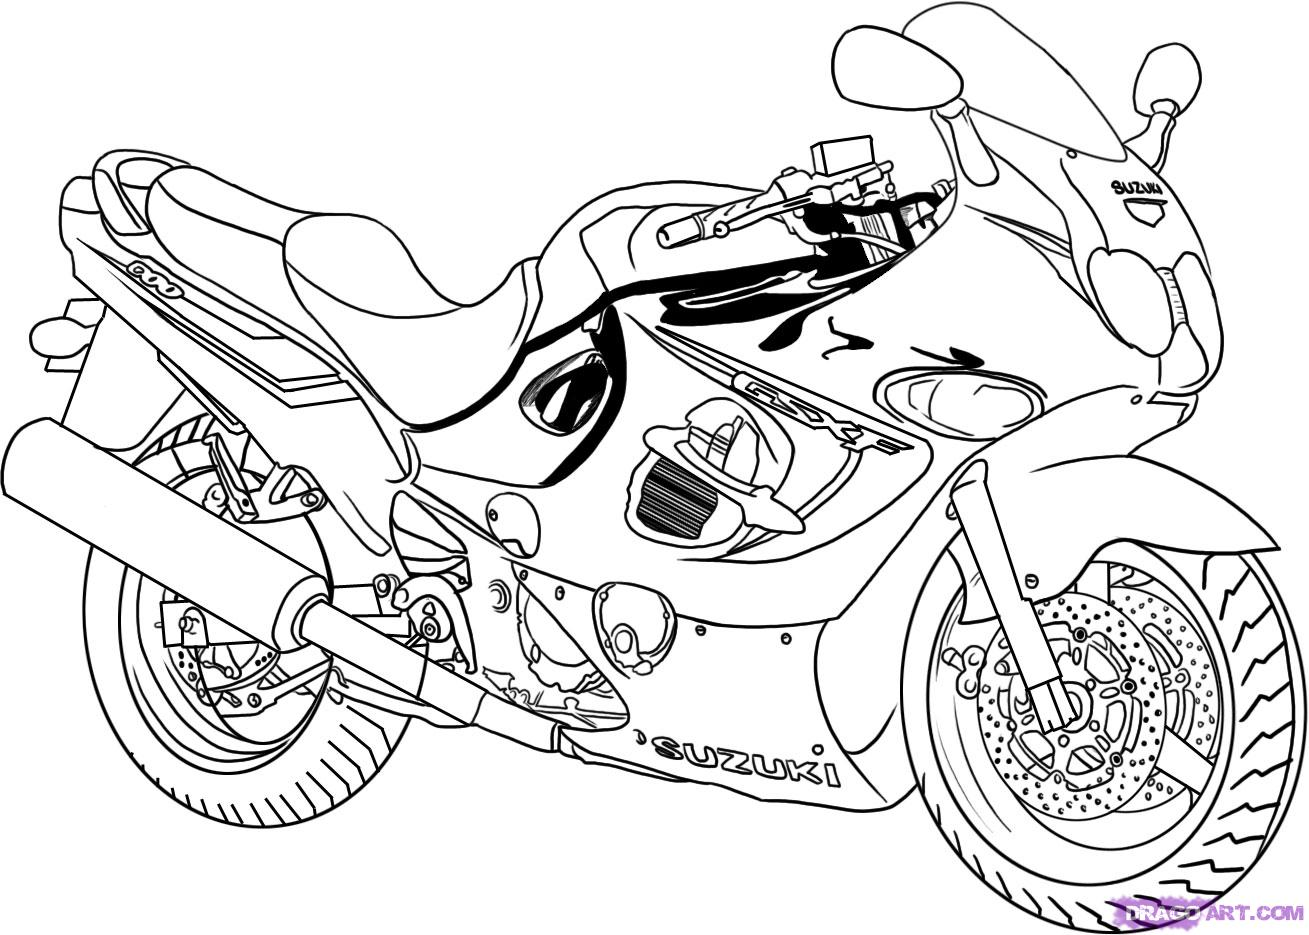 how to draw a motorcycle drawings and sketches while studying motorcycle hardley to draw how a motorcycle